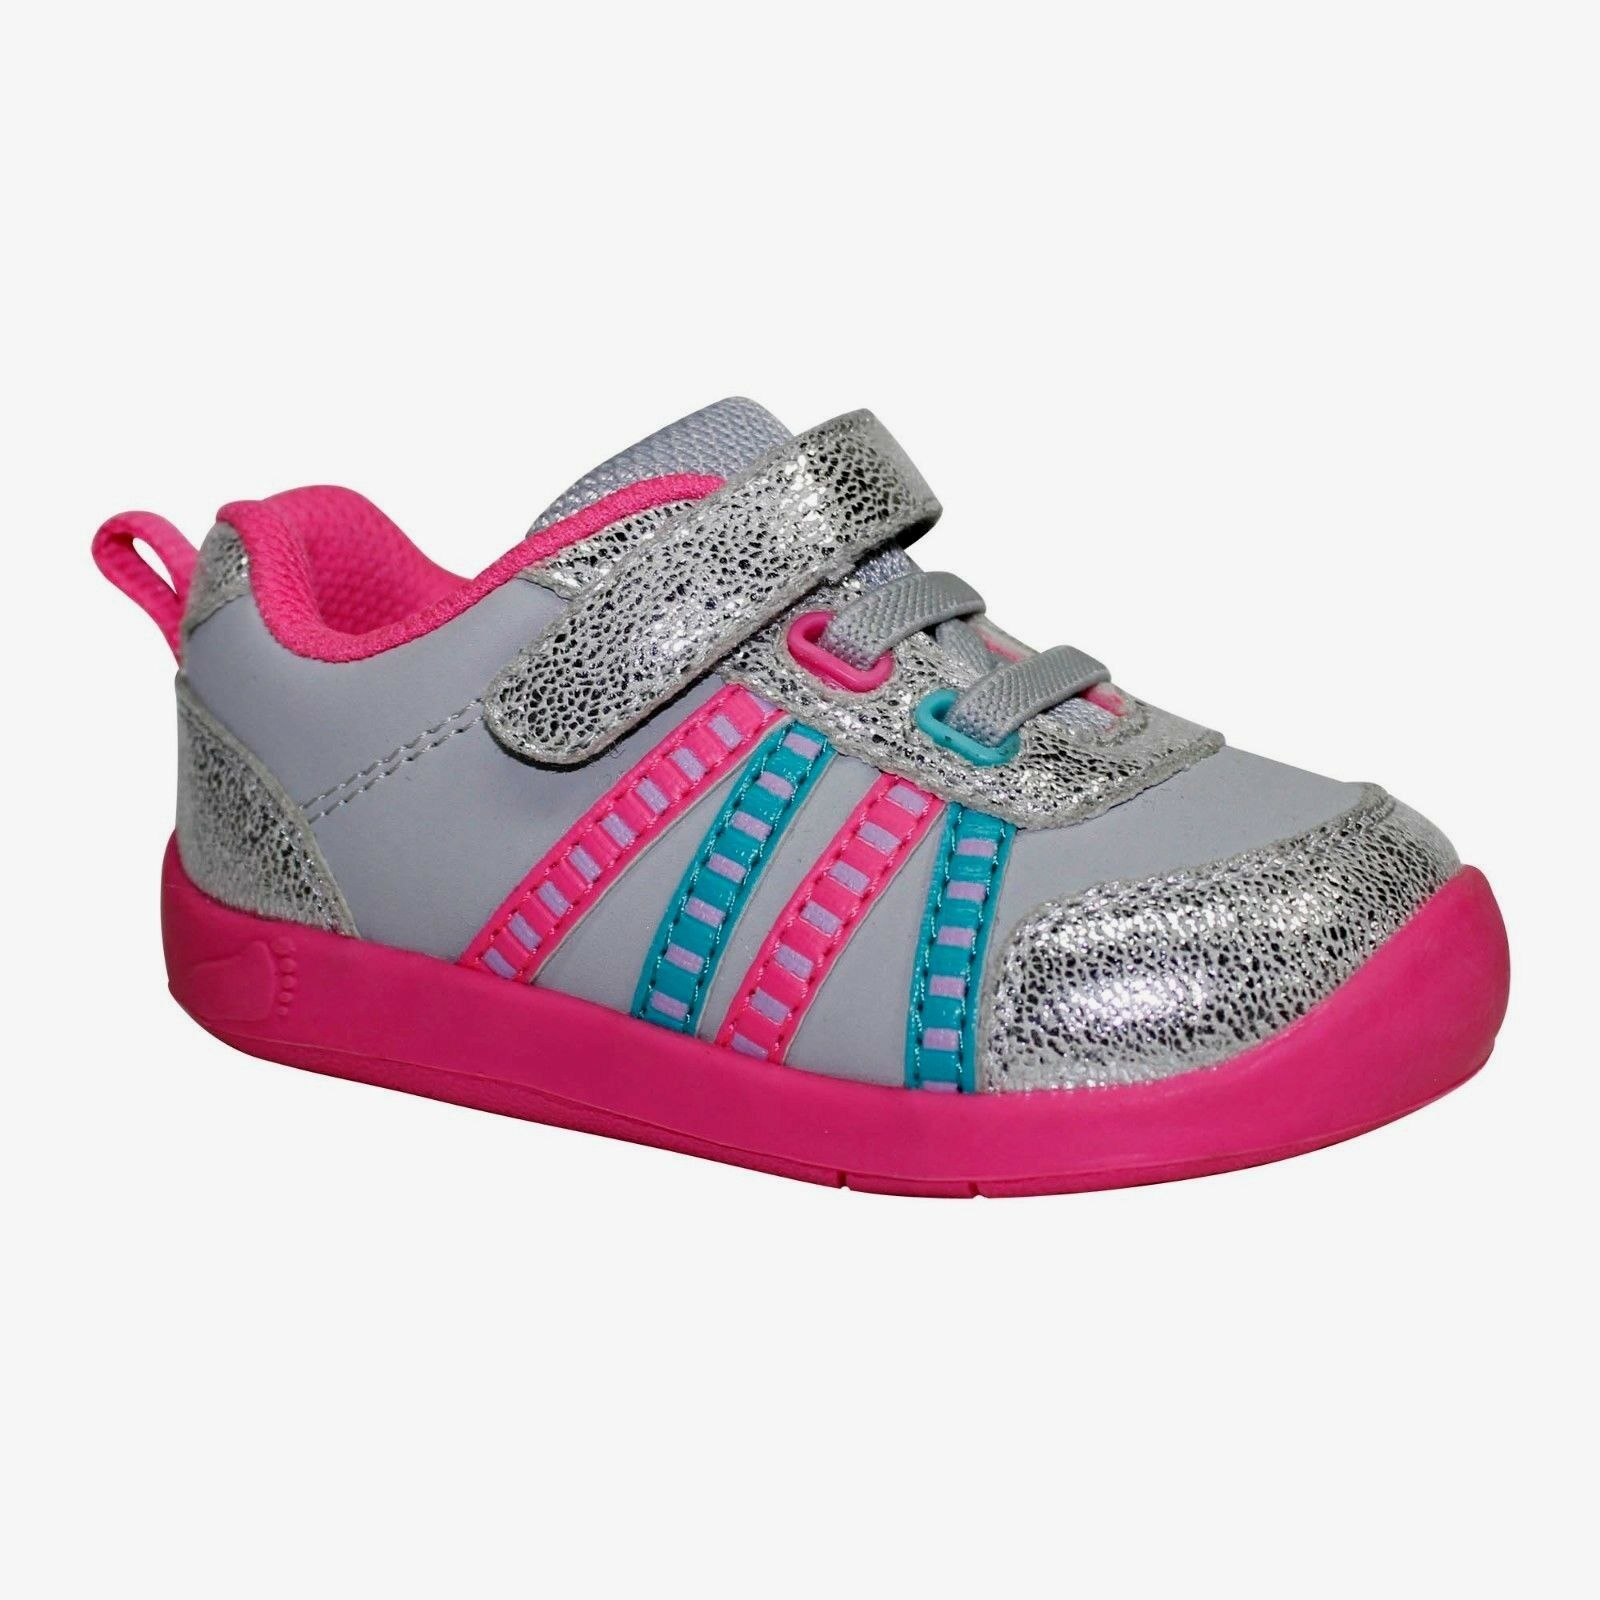 Garanimals Baby Girl Athletic Shoes Pink Gray Silver Glitter